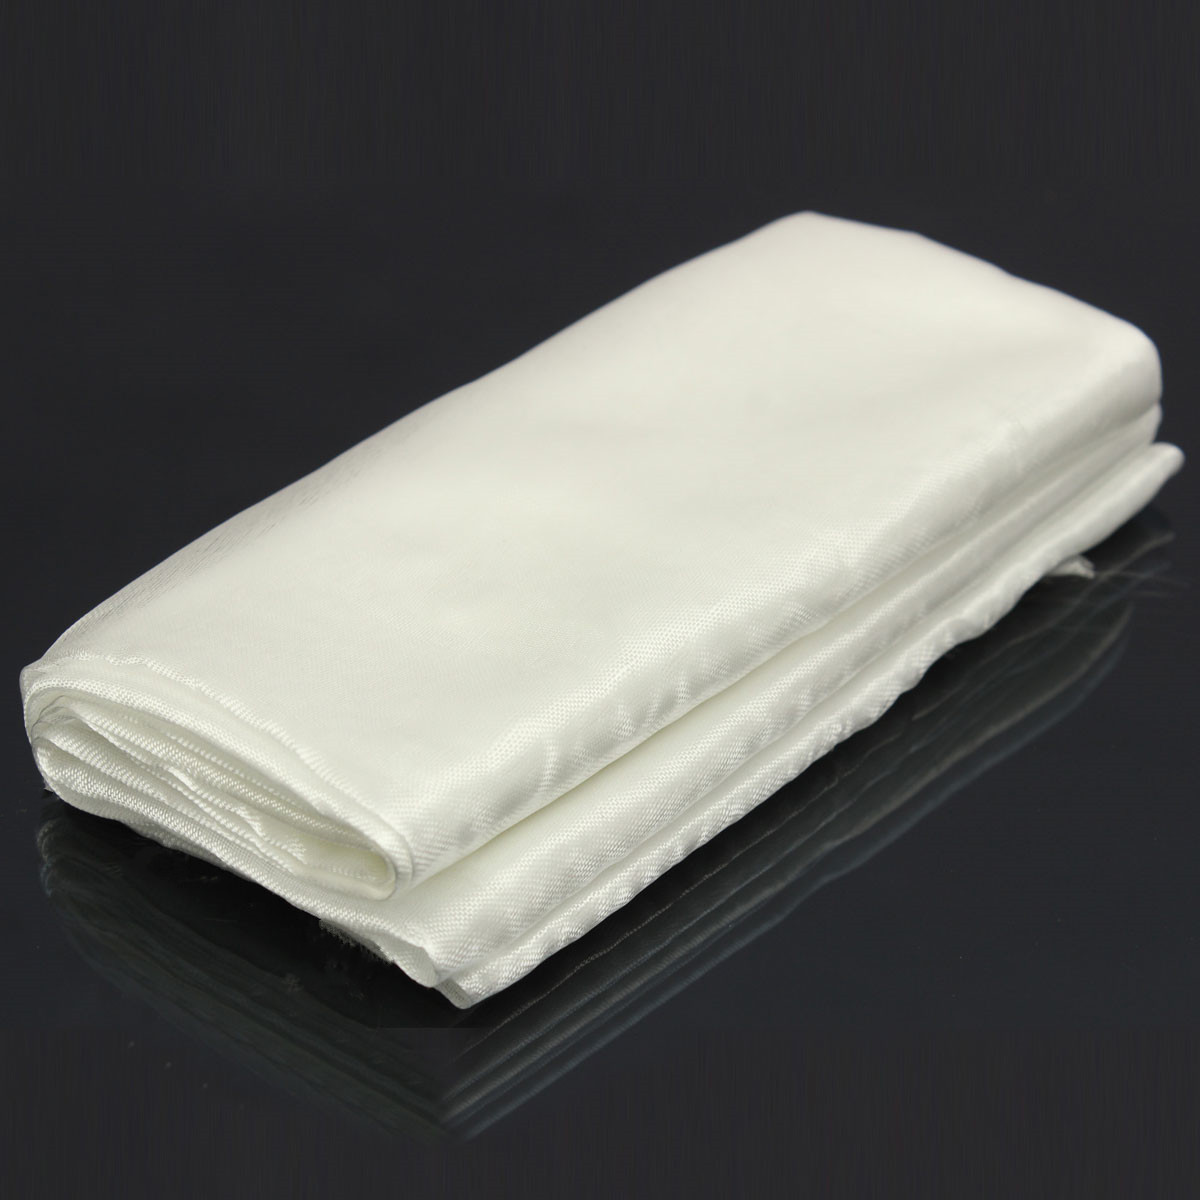 1 x 1.27m Thickness 0.03mm Ultra Thin Fiber Glass Fabric Reinforcements Fiberglass Fibreglass Cloth High temperature resistance vitek vt 7150 w